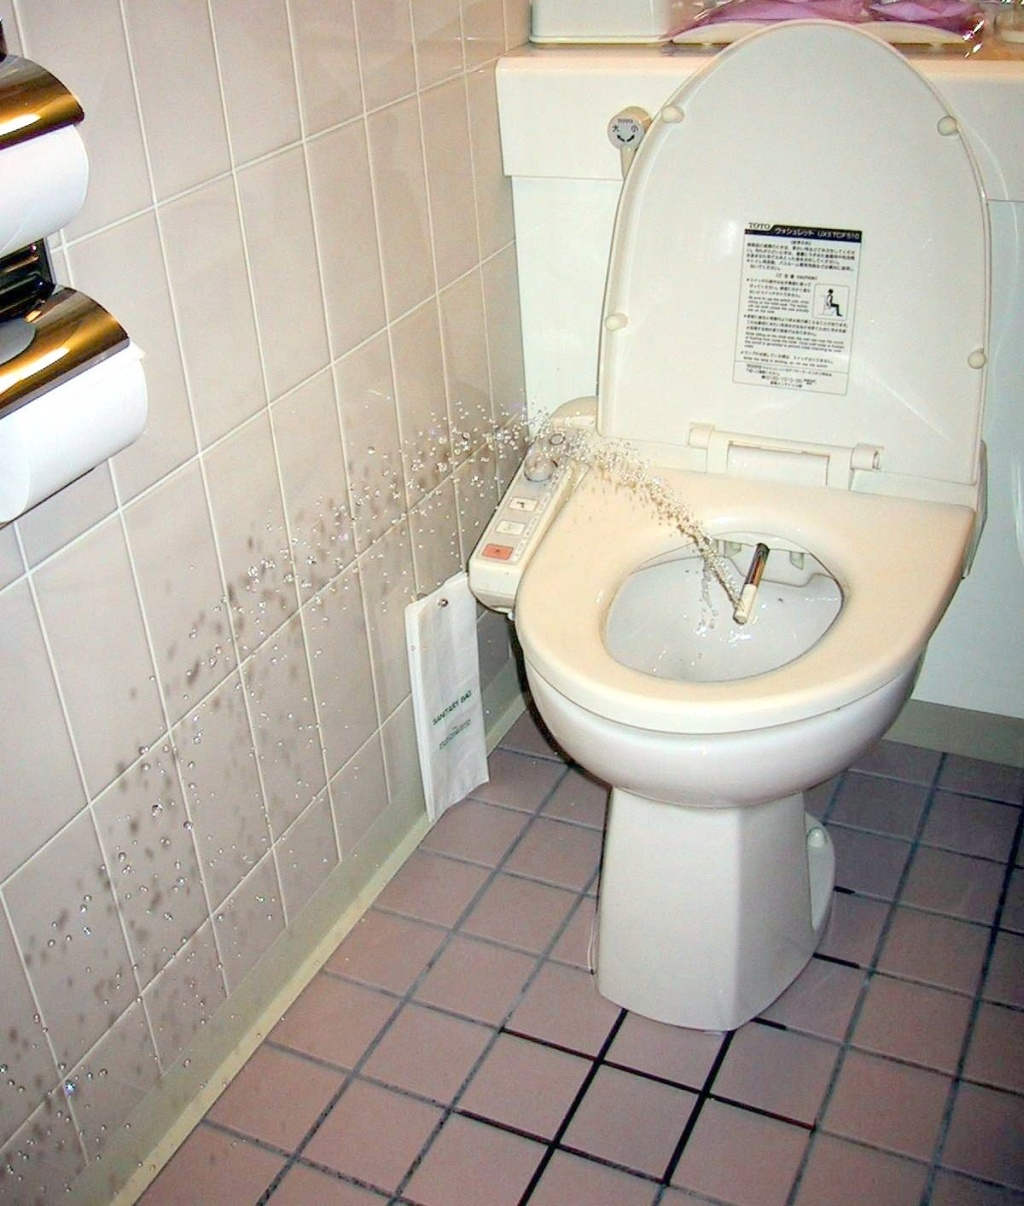 Phenomenal Toilets In Japan Wikipedia Caraccident5 Cool Chair Designs And Ideas Caraccident5Info